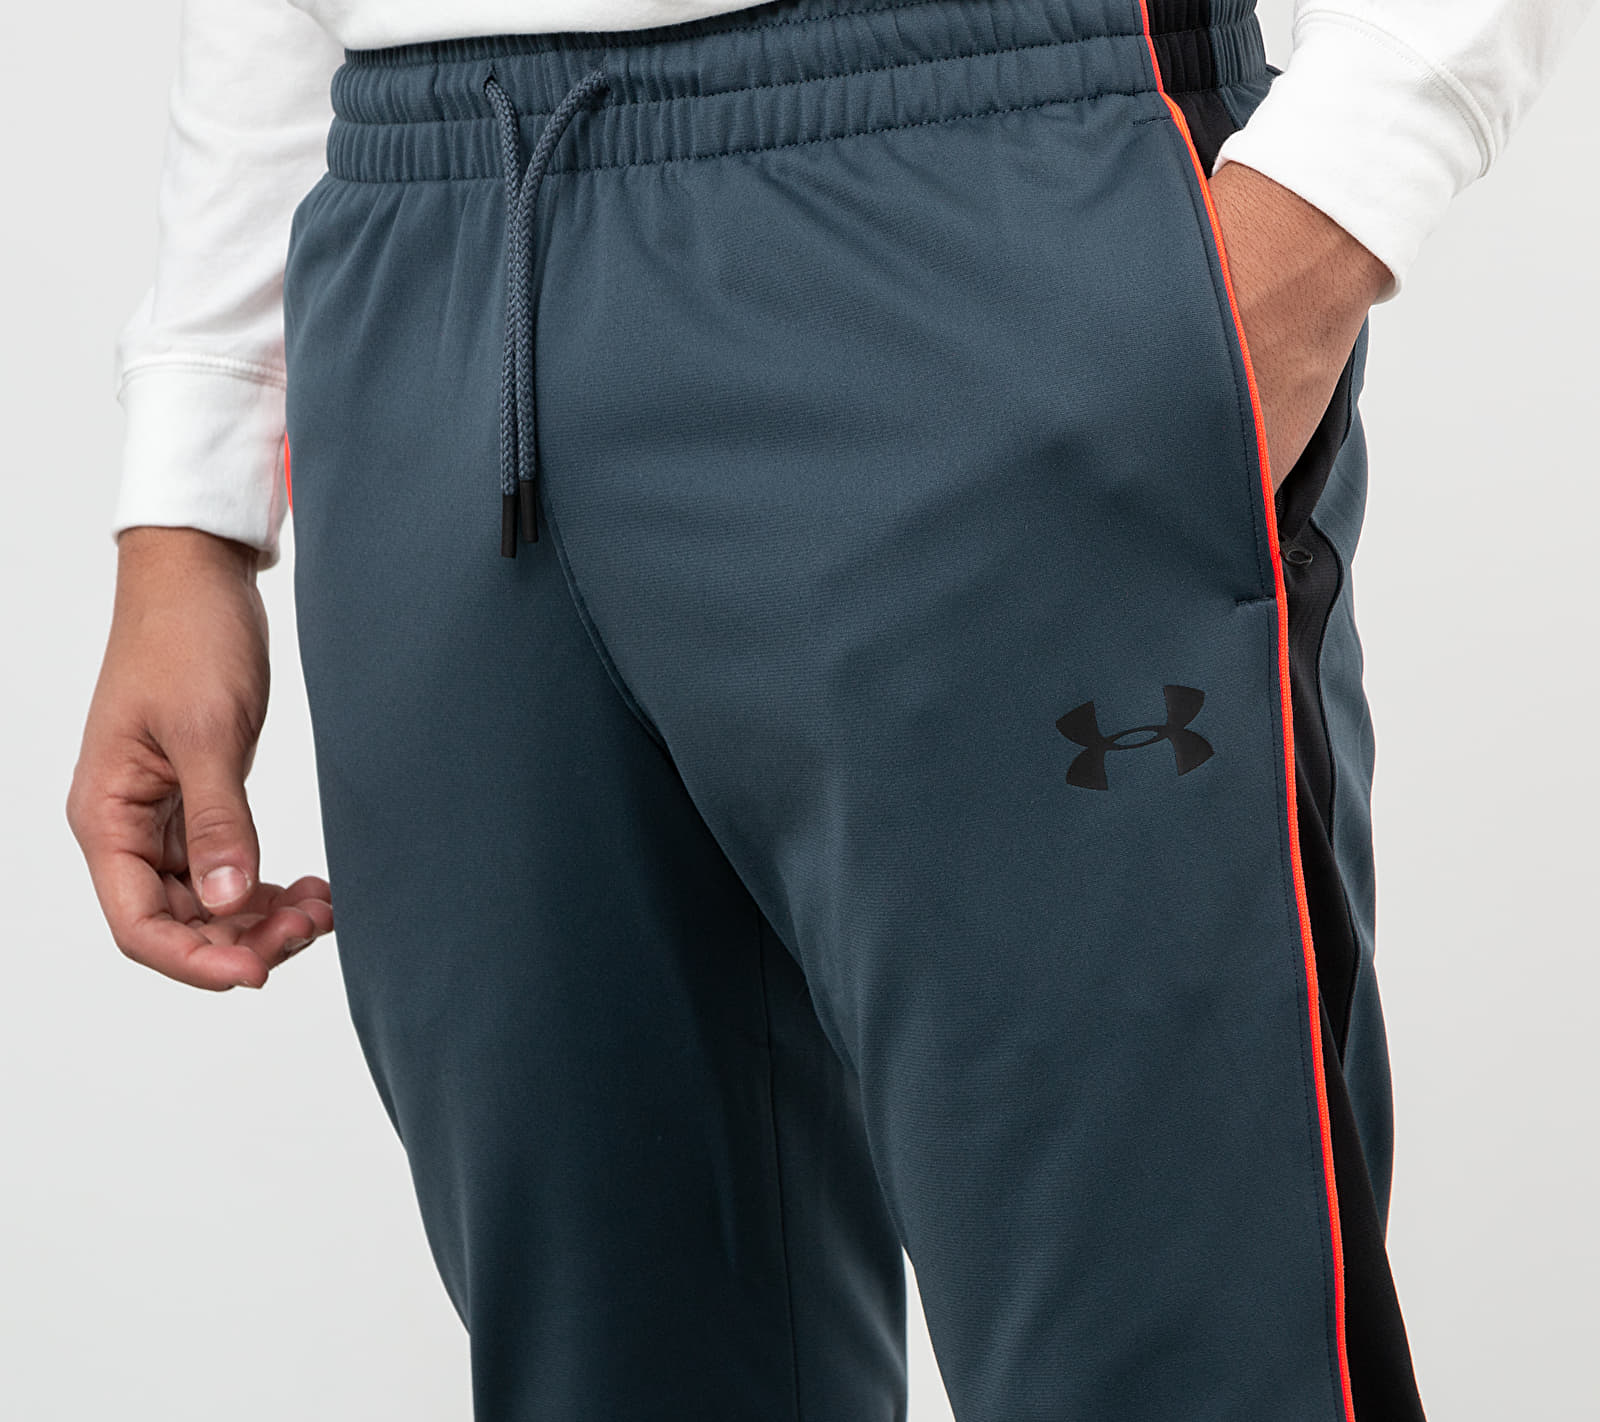 Under Armour Unstoppable Essential Track Pants Grey, Gray